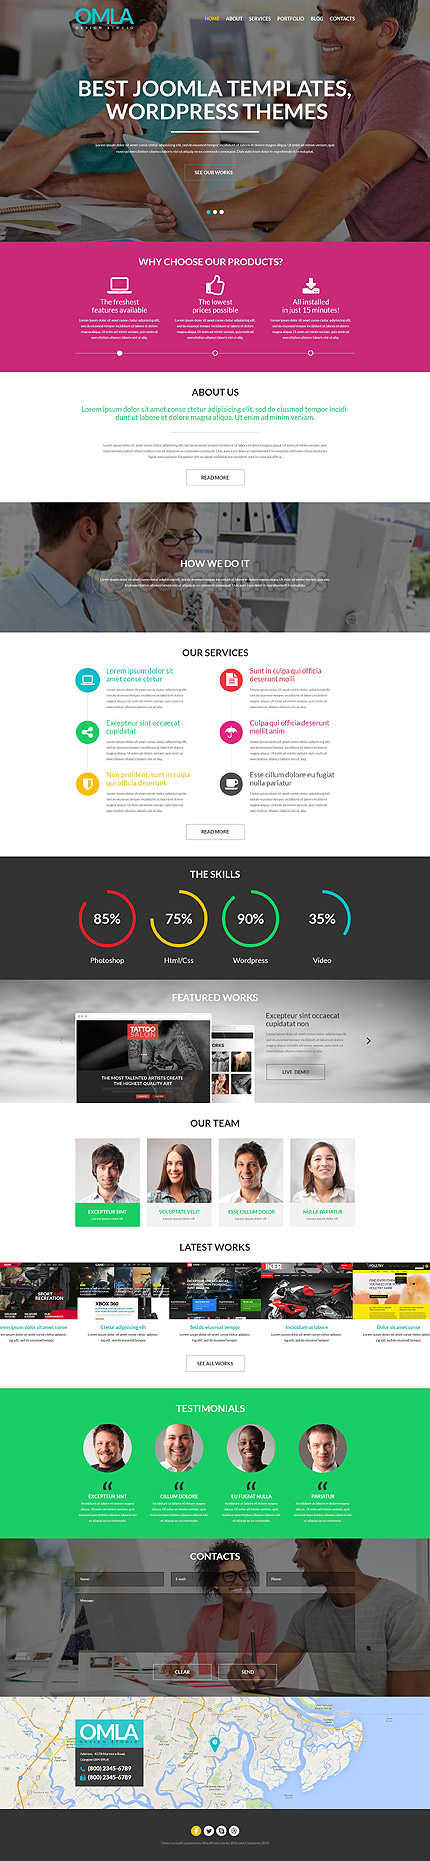 Template 52037 - Design Agency Responsive WordPress Theme with Parallax, Background video, Lazy Load Effect